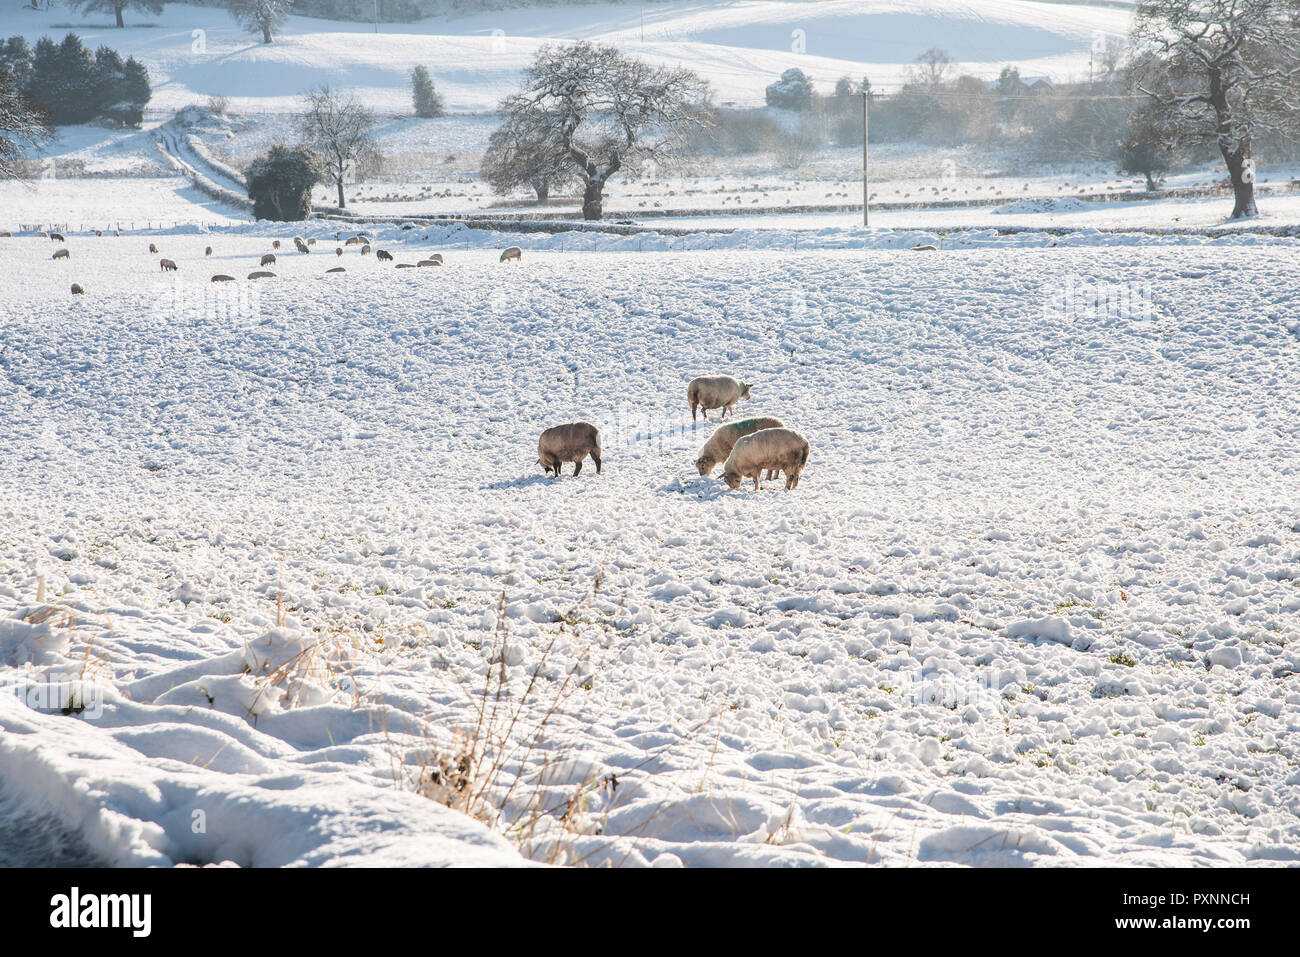 Sheep grazing on a snow covered field in Staffordshire  England  UK. - Stock Image